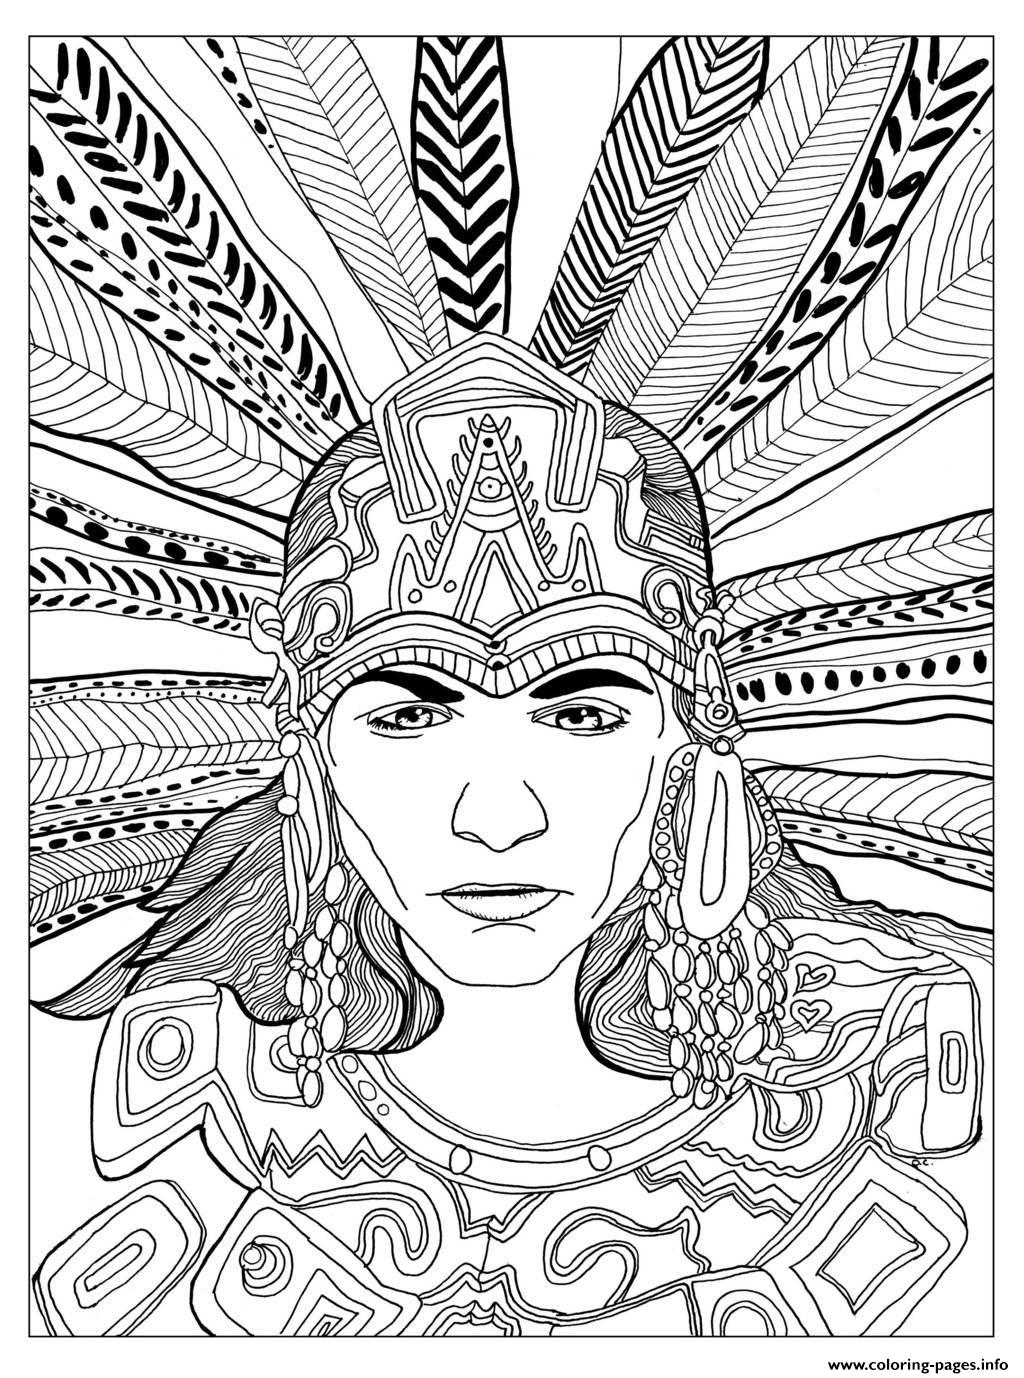 Adult Chief Mayan By Olivier coloring pages